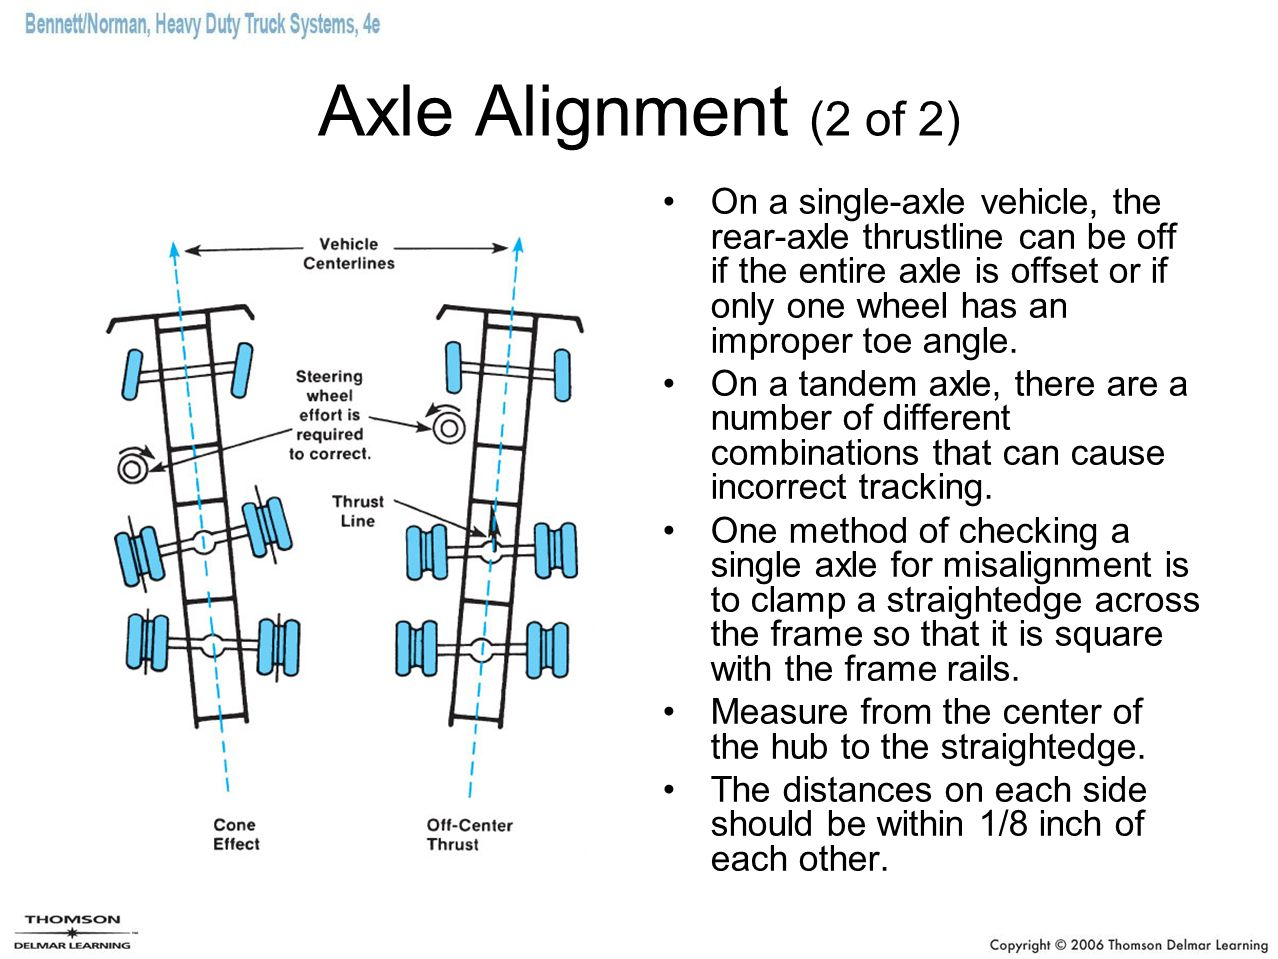 Axle Alignment (2 of 2)